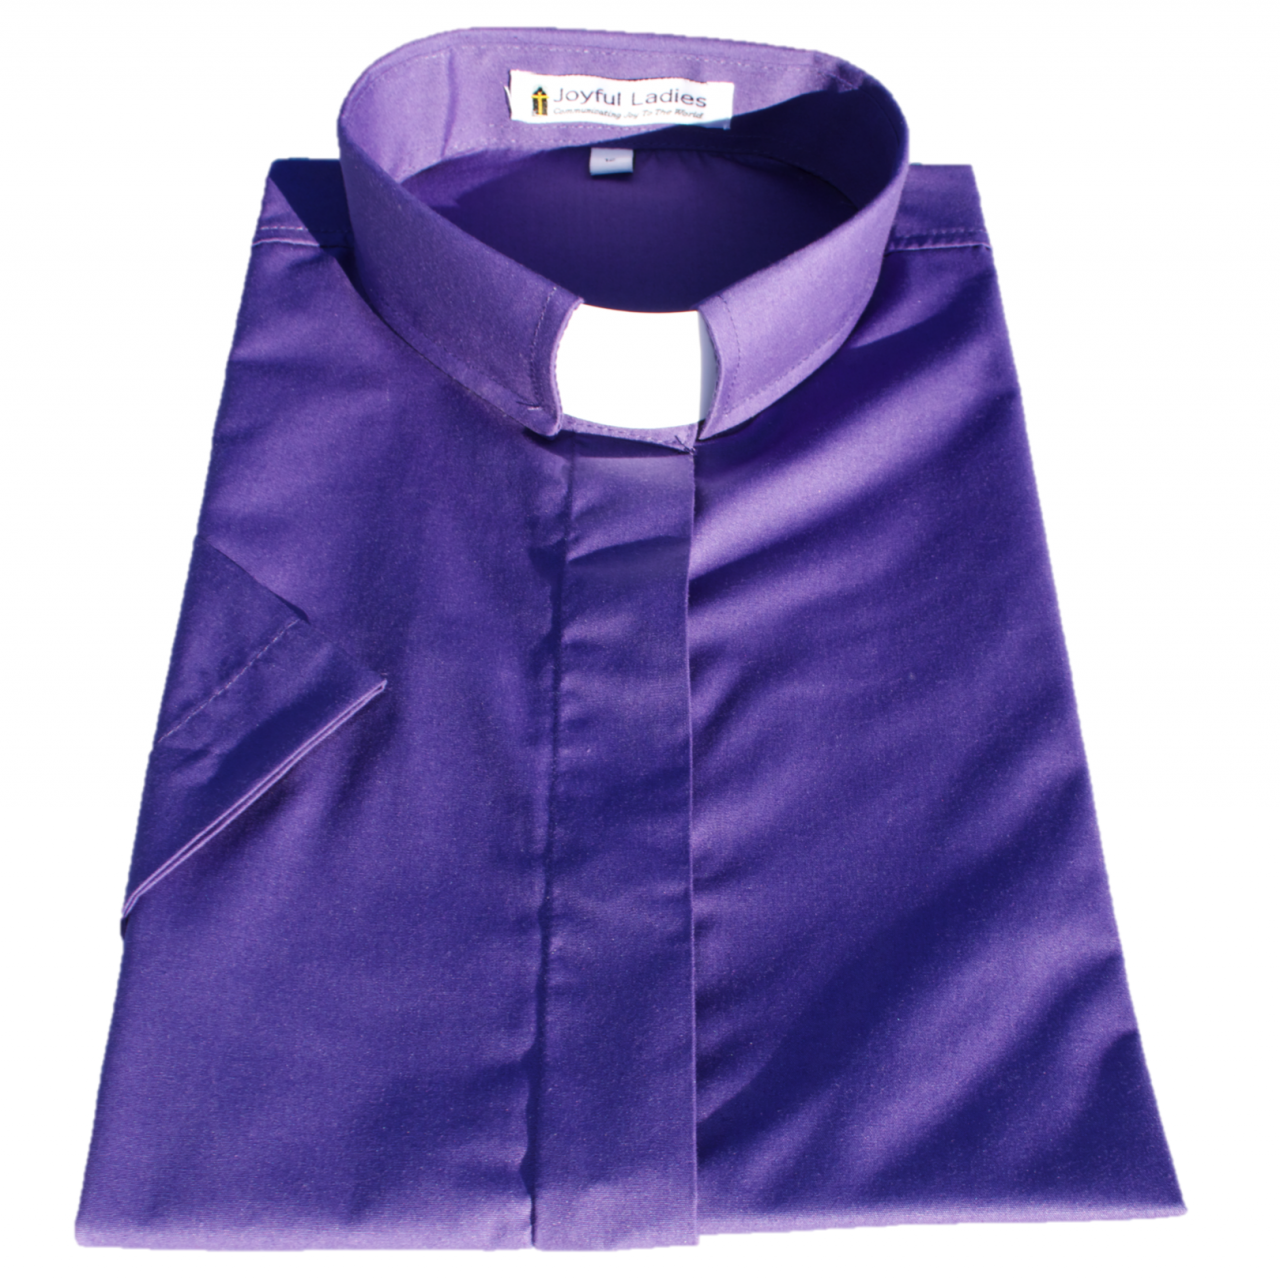 555. Women's Short-Sleeve Tab-Collar Clergy Shirt - Purple